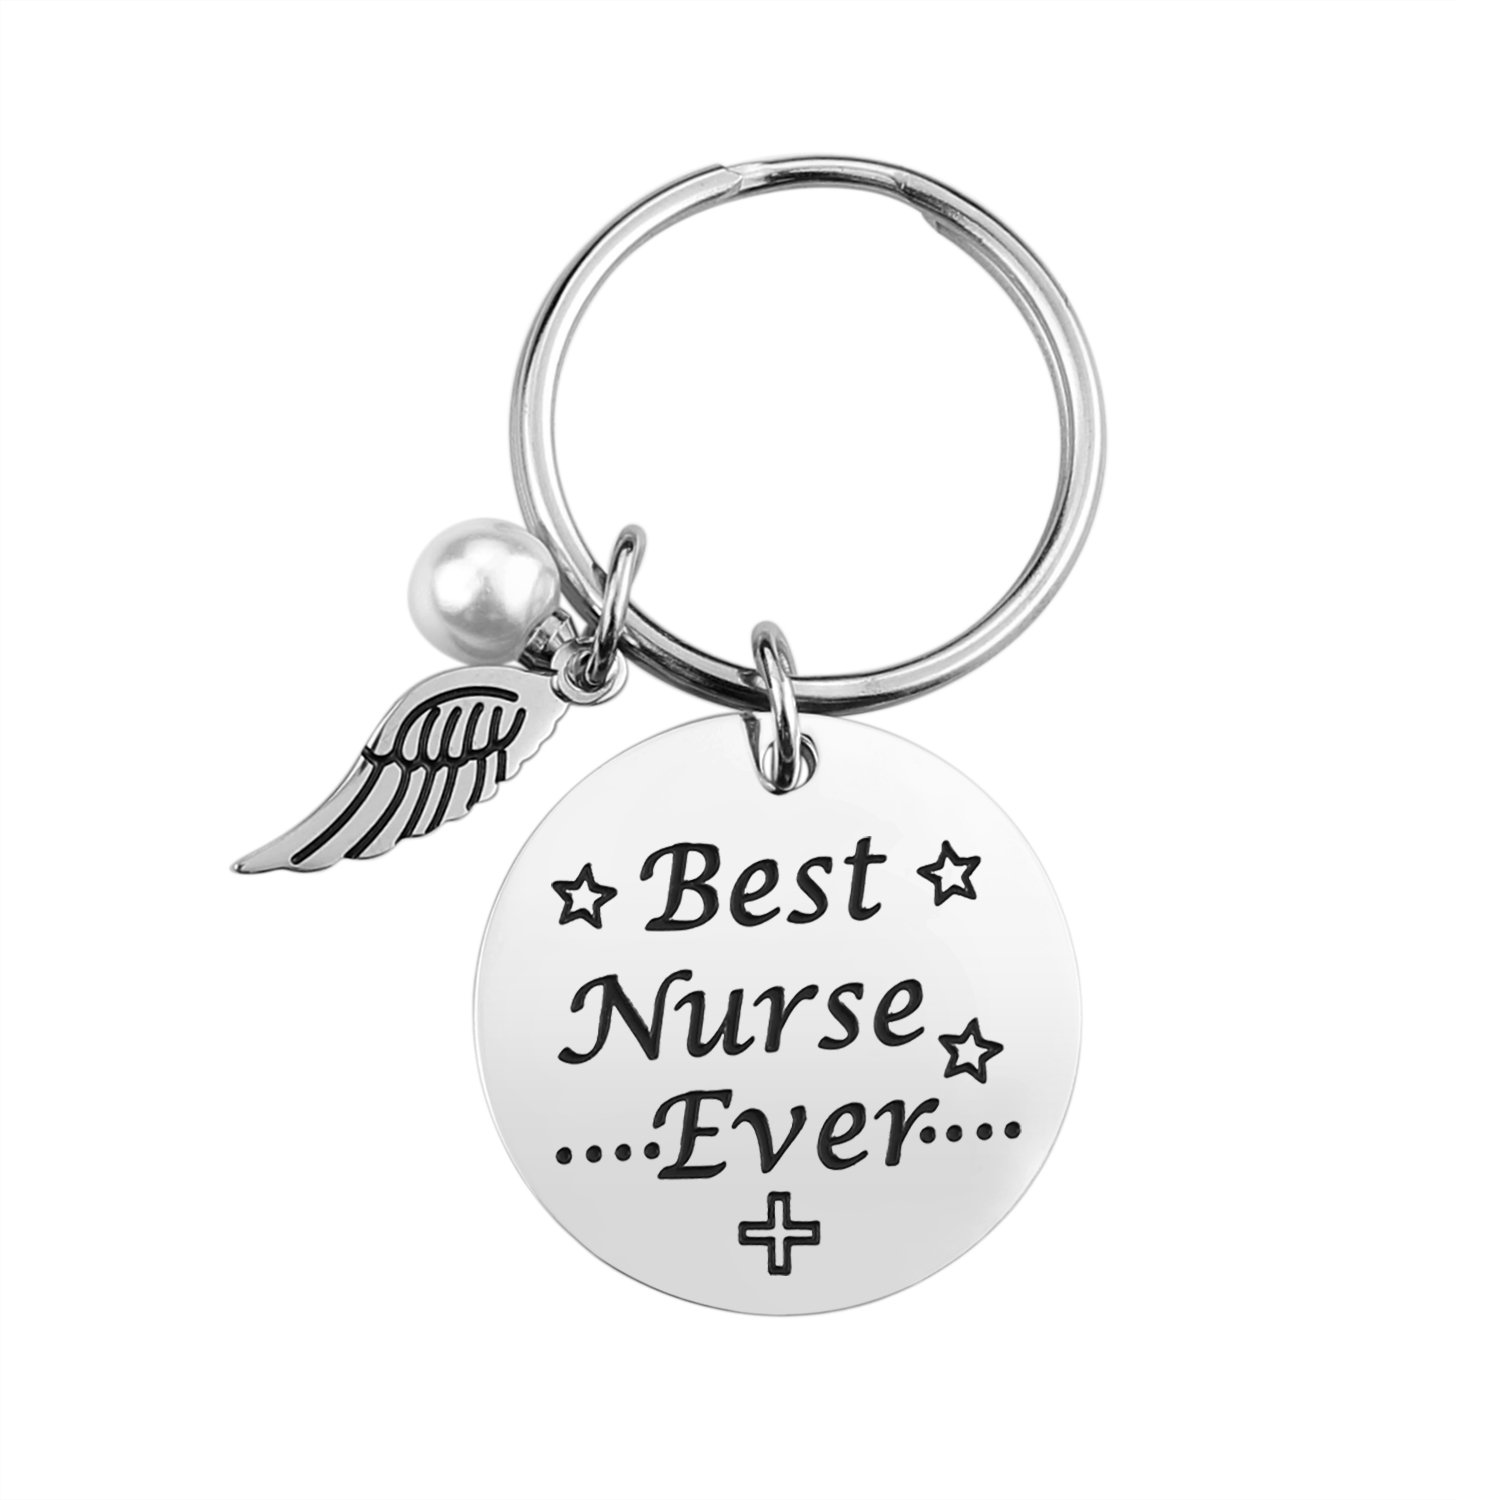 95e52281250 Get Quotations · Nurse Keychain Gifts for Women - Nursing Keychain Jewelry  Perfect Nurses Appreciation Gift for Birthday Graduation